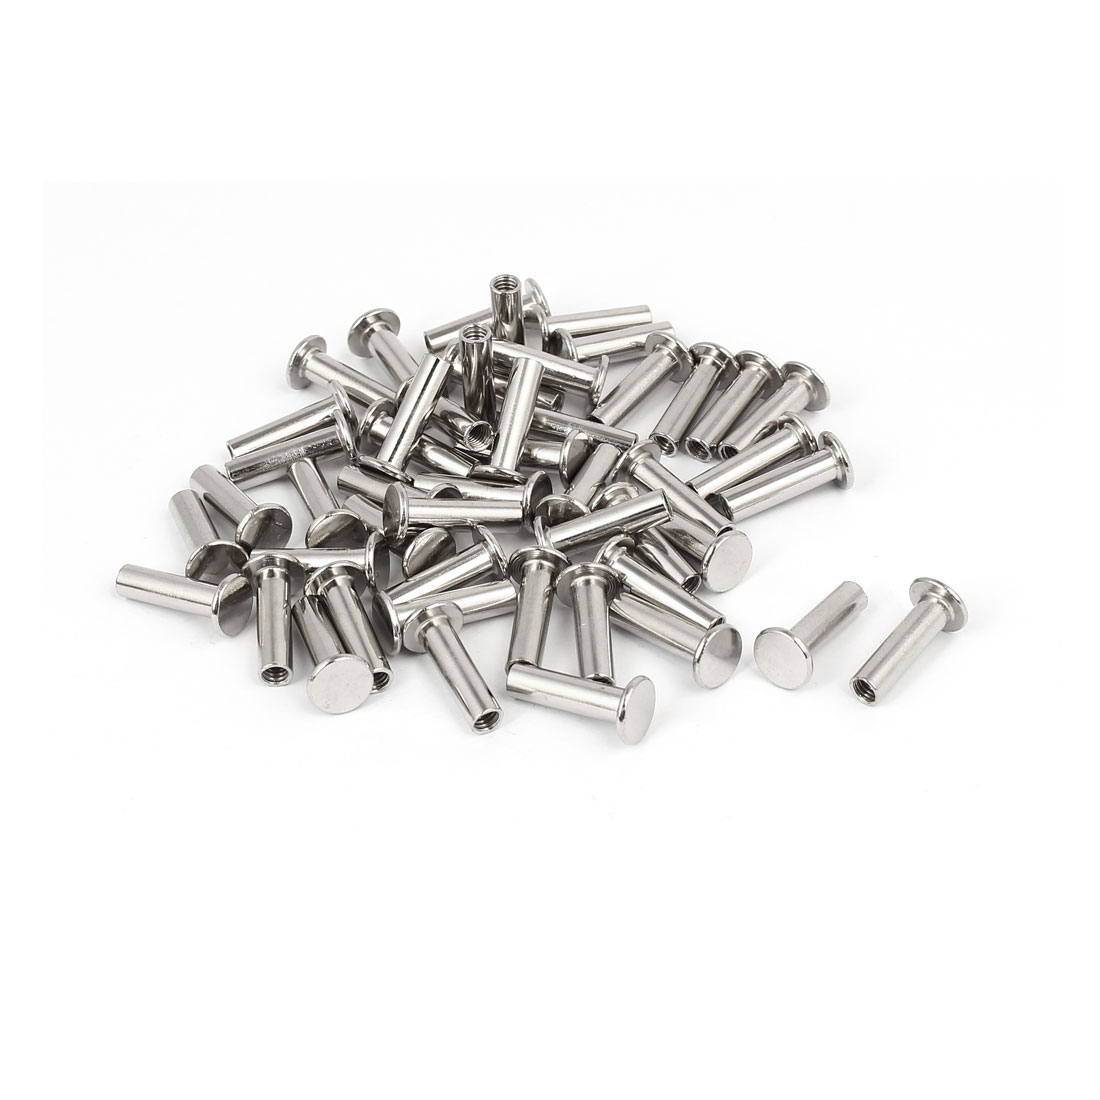 Photo Album Metal Nickel Plated Binding Screw Post Nut 5mmx17mm 50pcs